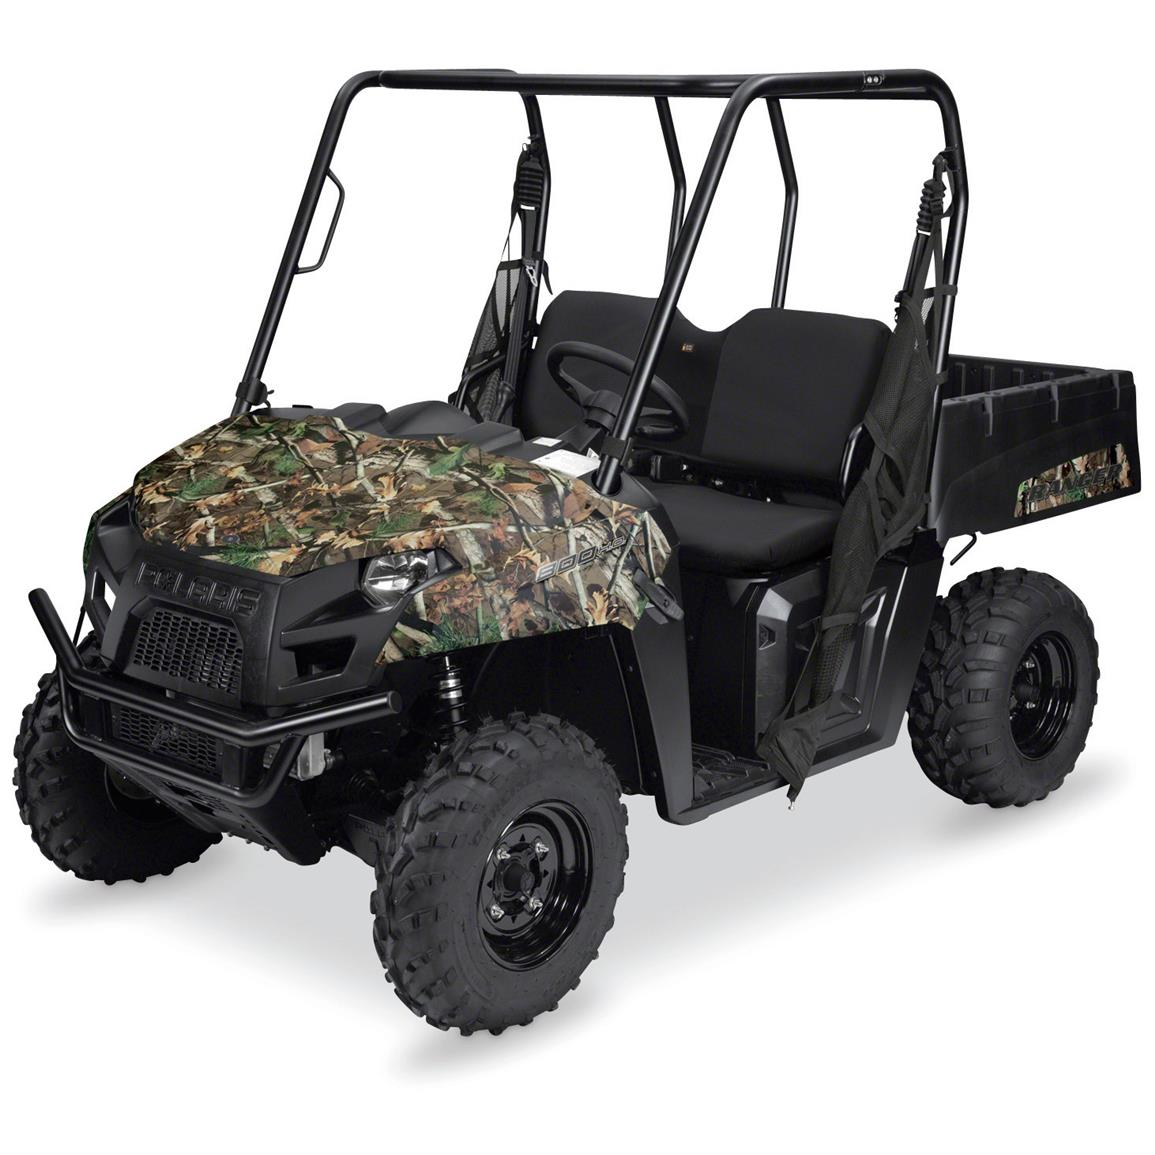 Quad Gear UTV Bench Seat Cover, Polaris Ranger Mid-Size 400, 500 and 800 Series, Black